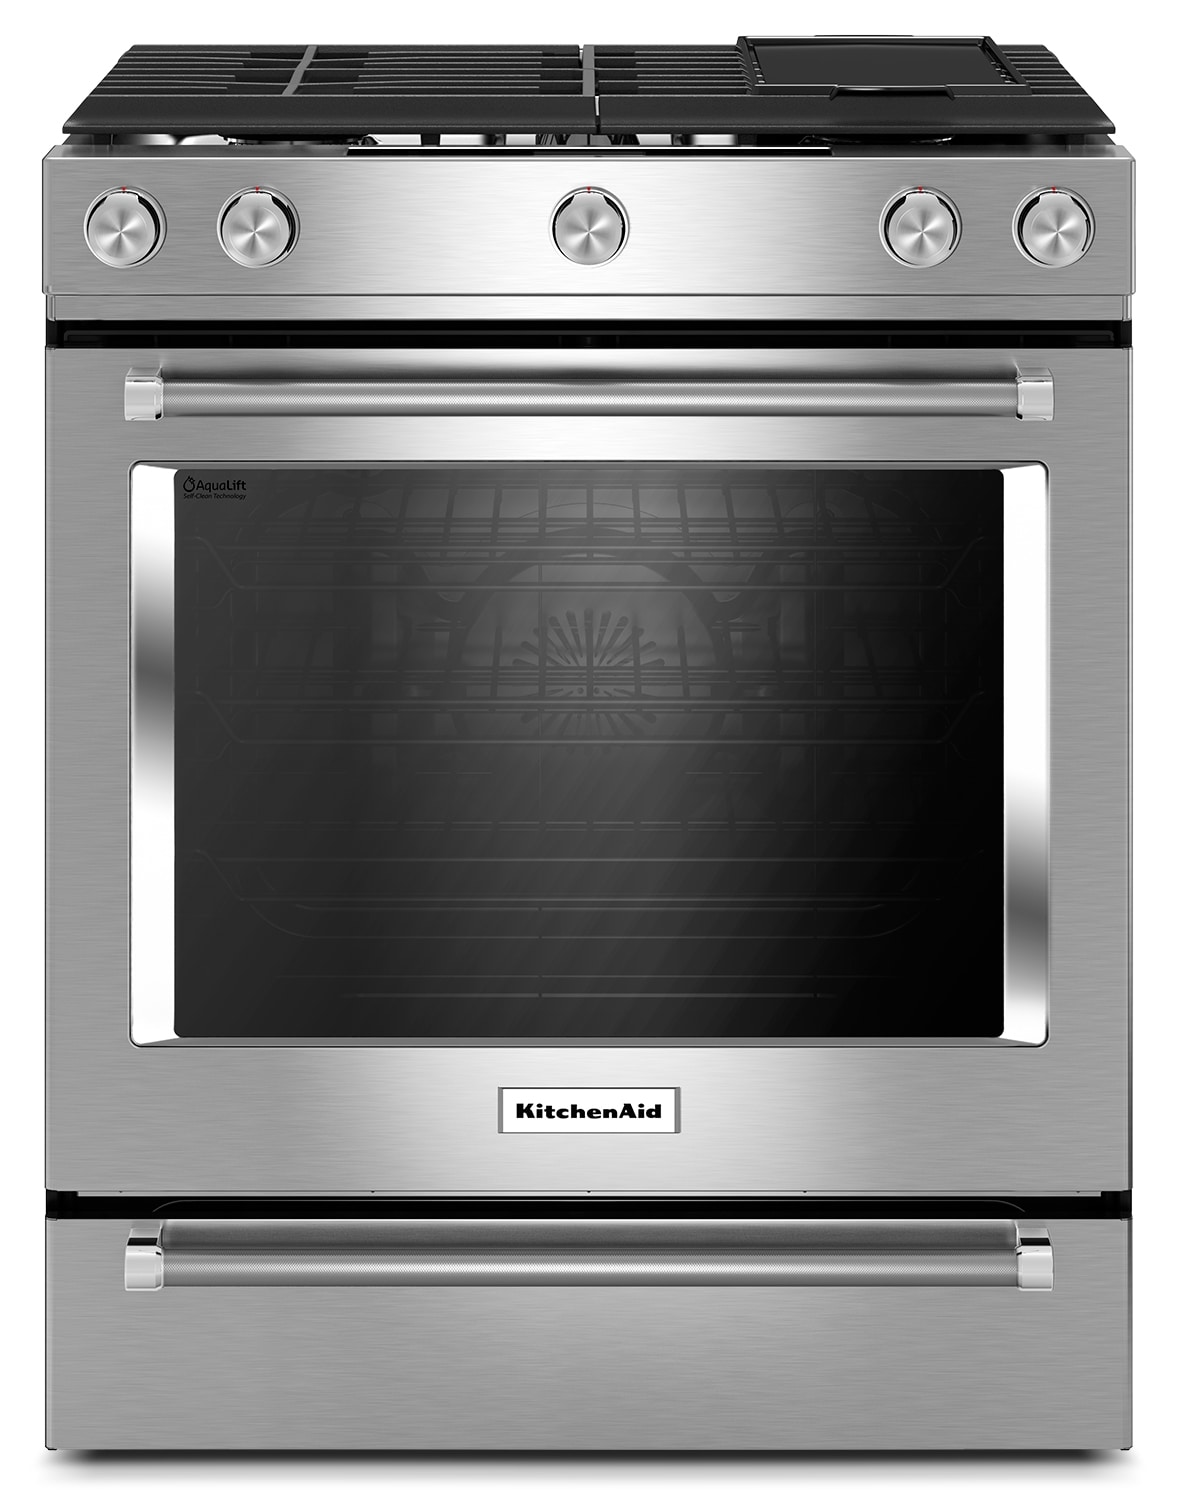 kitchenaid gas range kitchenaid stainless steel slide in gas convection range 13162